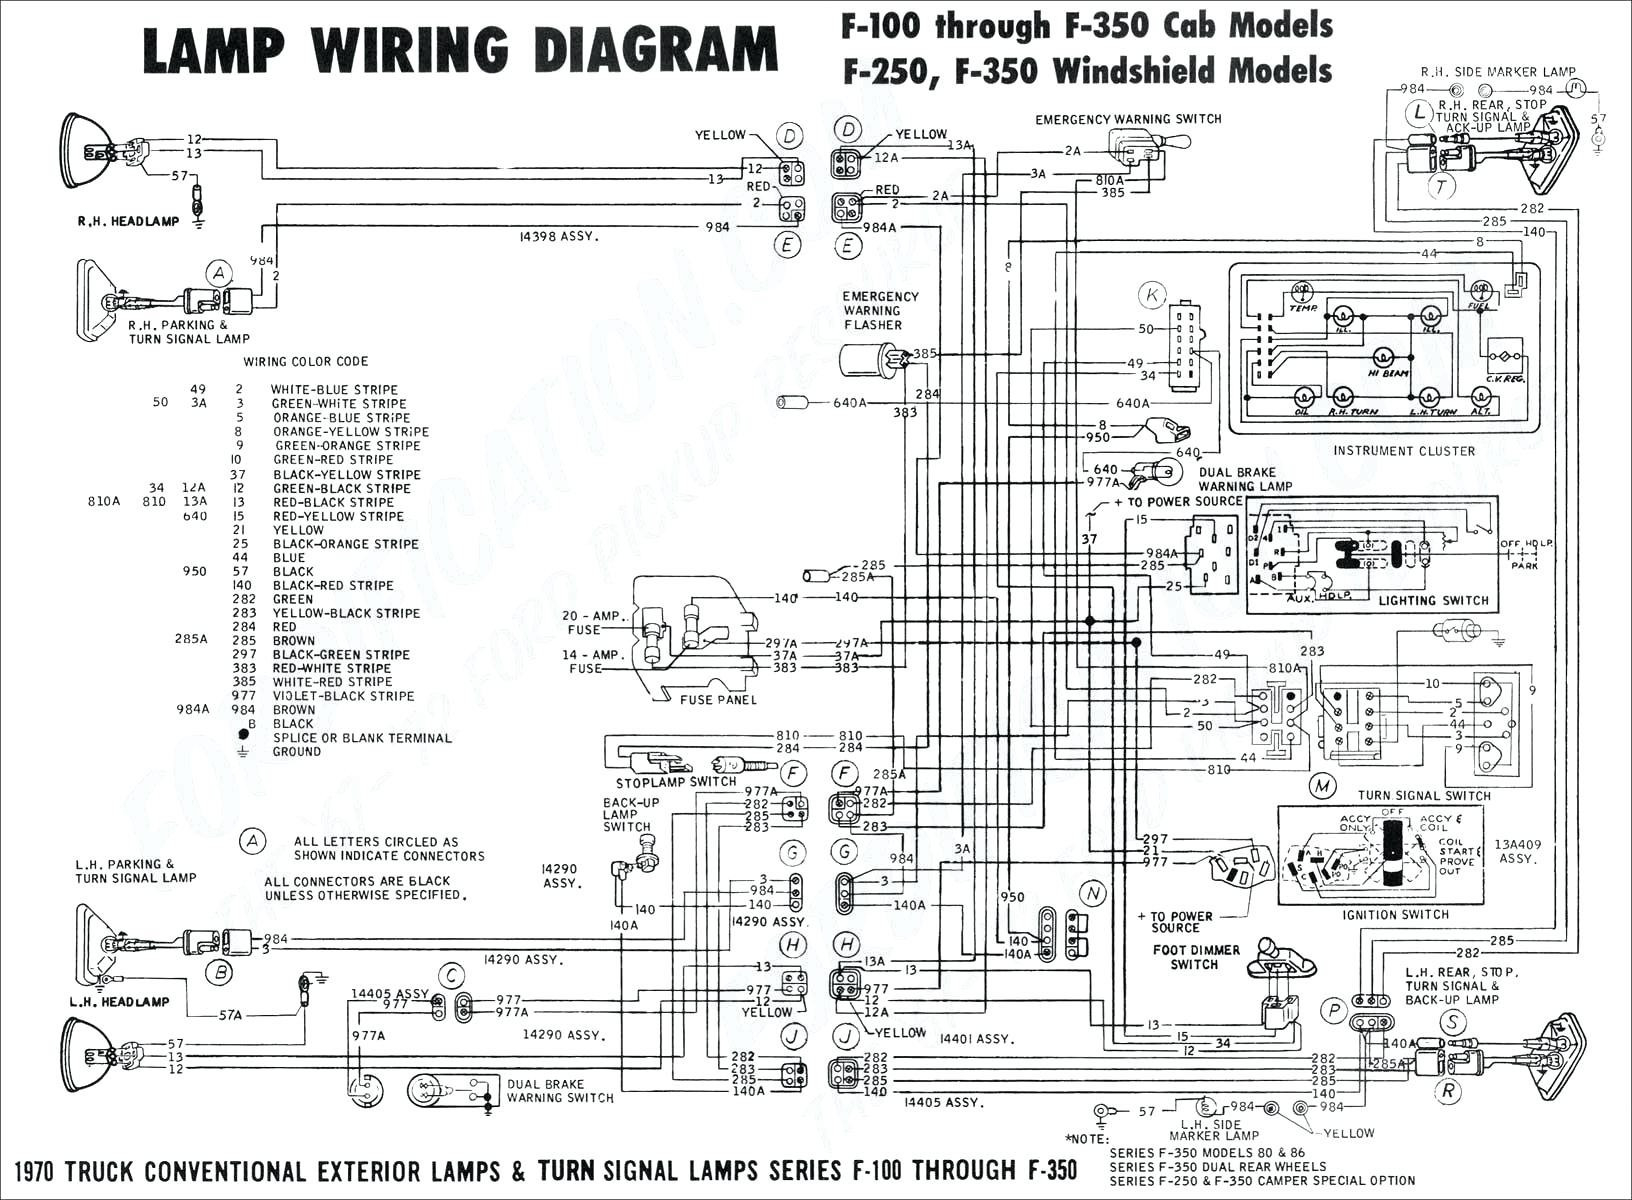 2010 flex wiring diagram experts of wiring diagram u2022 rh evilcloud co uk  Furnace Fan Relay